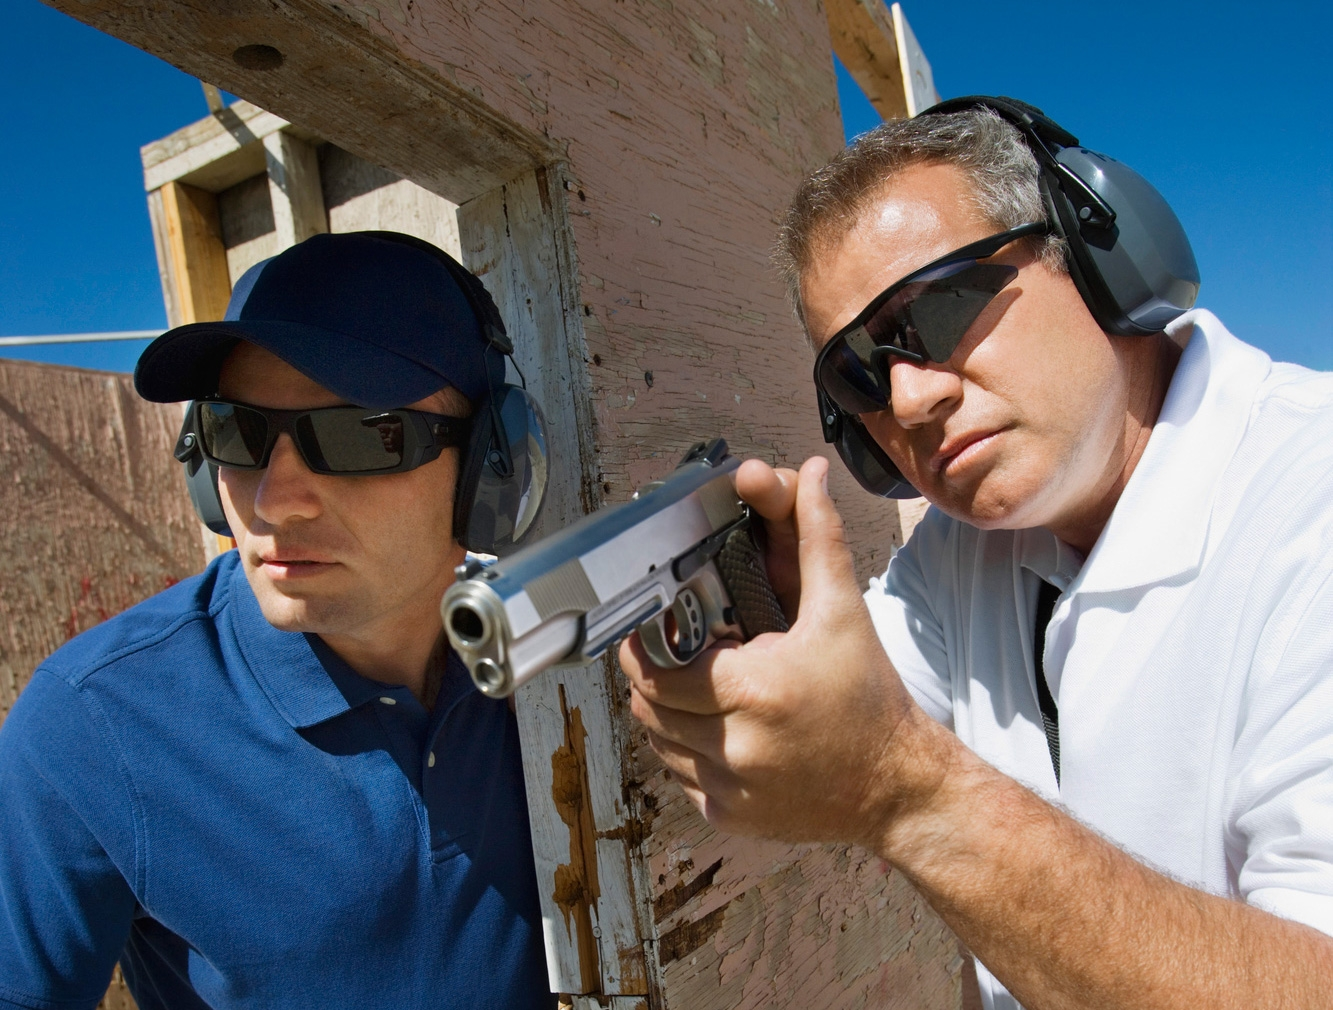 7 Tips for Taking Care of Your Gun